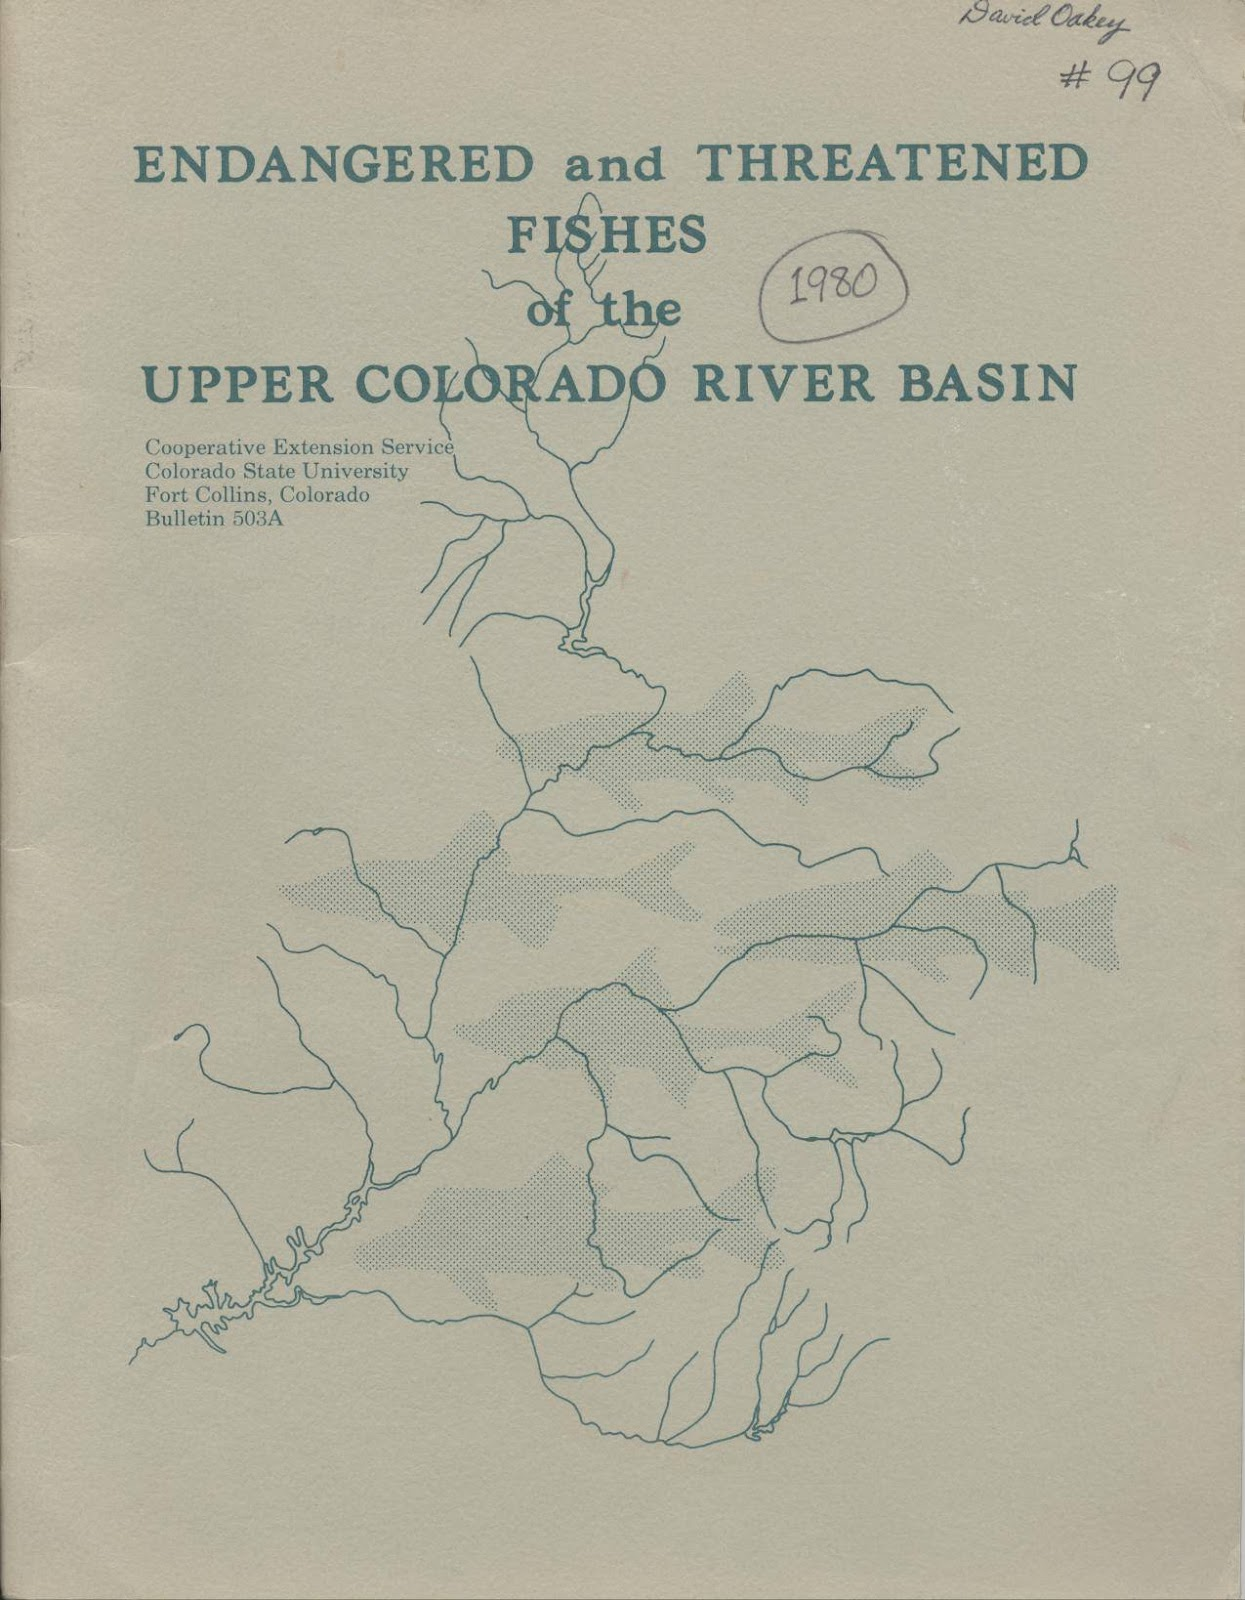 fort collins colo cooperative extension service colorado state university 1980 bull no 503a 35 p illus with maps and drawings softbound